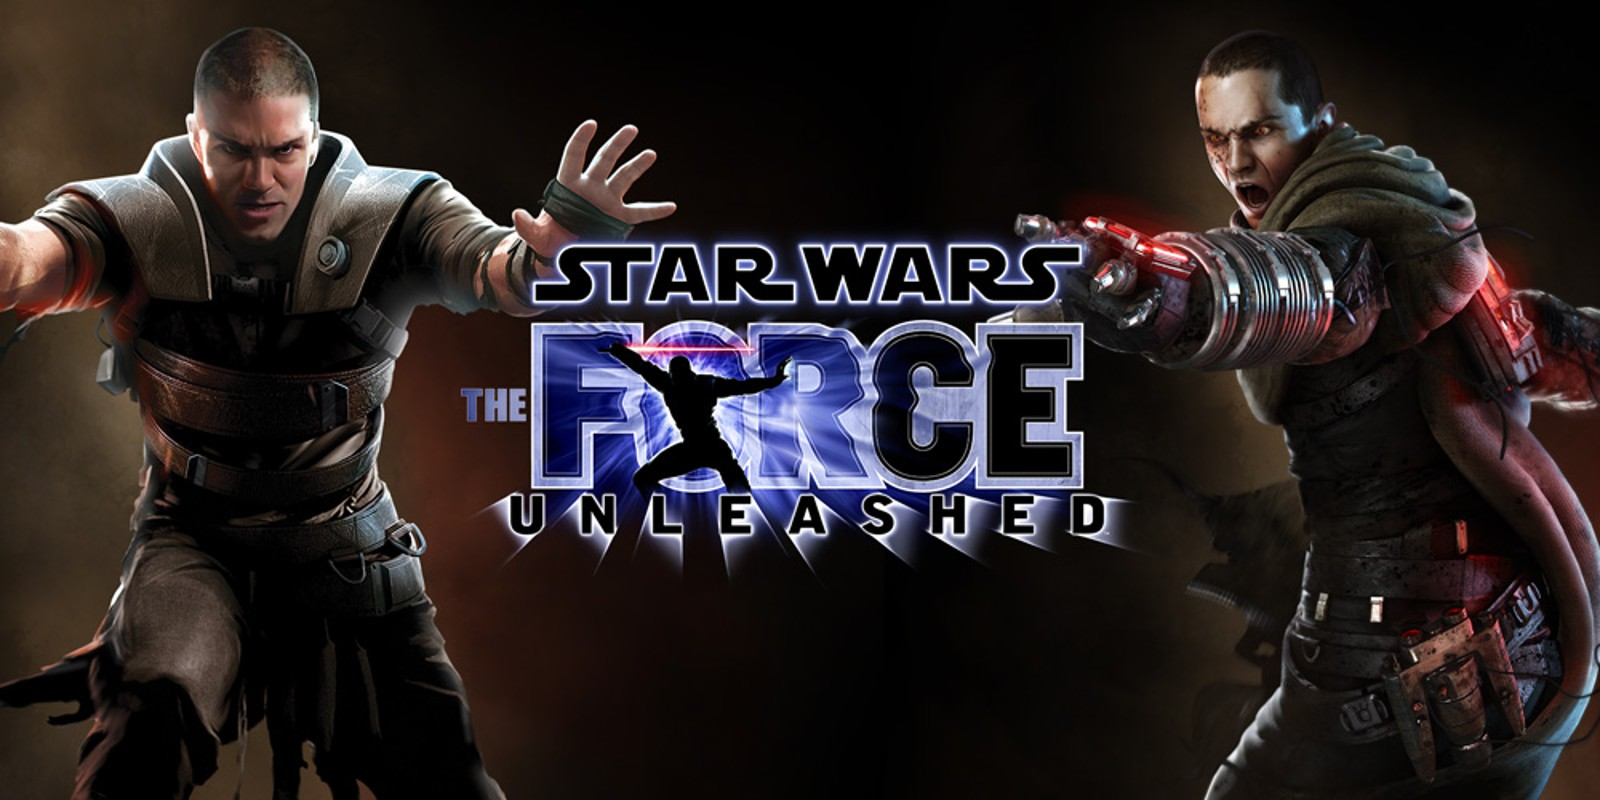 Amazon.com: Star Wars: The Force Unleashed - Nintendo Wii ...